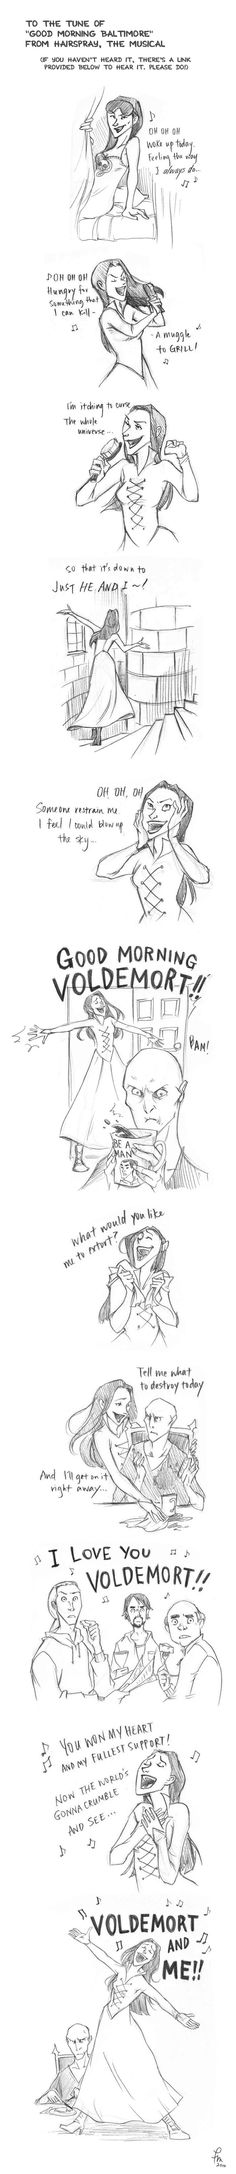 """Harry Potter remake of """"Hairspray""""'s """"Good Morning Baltimore"""". Voldemort is NOT impressed XD."""